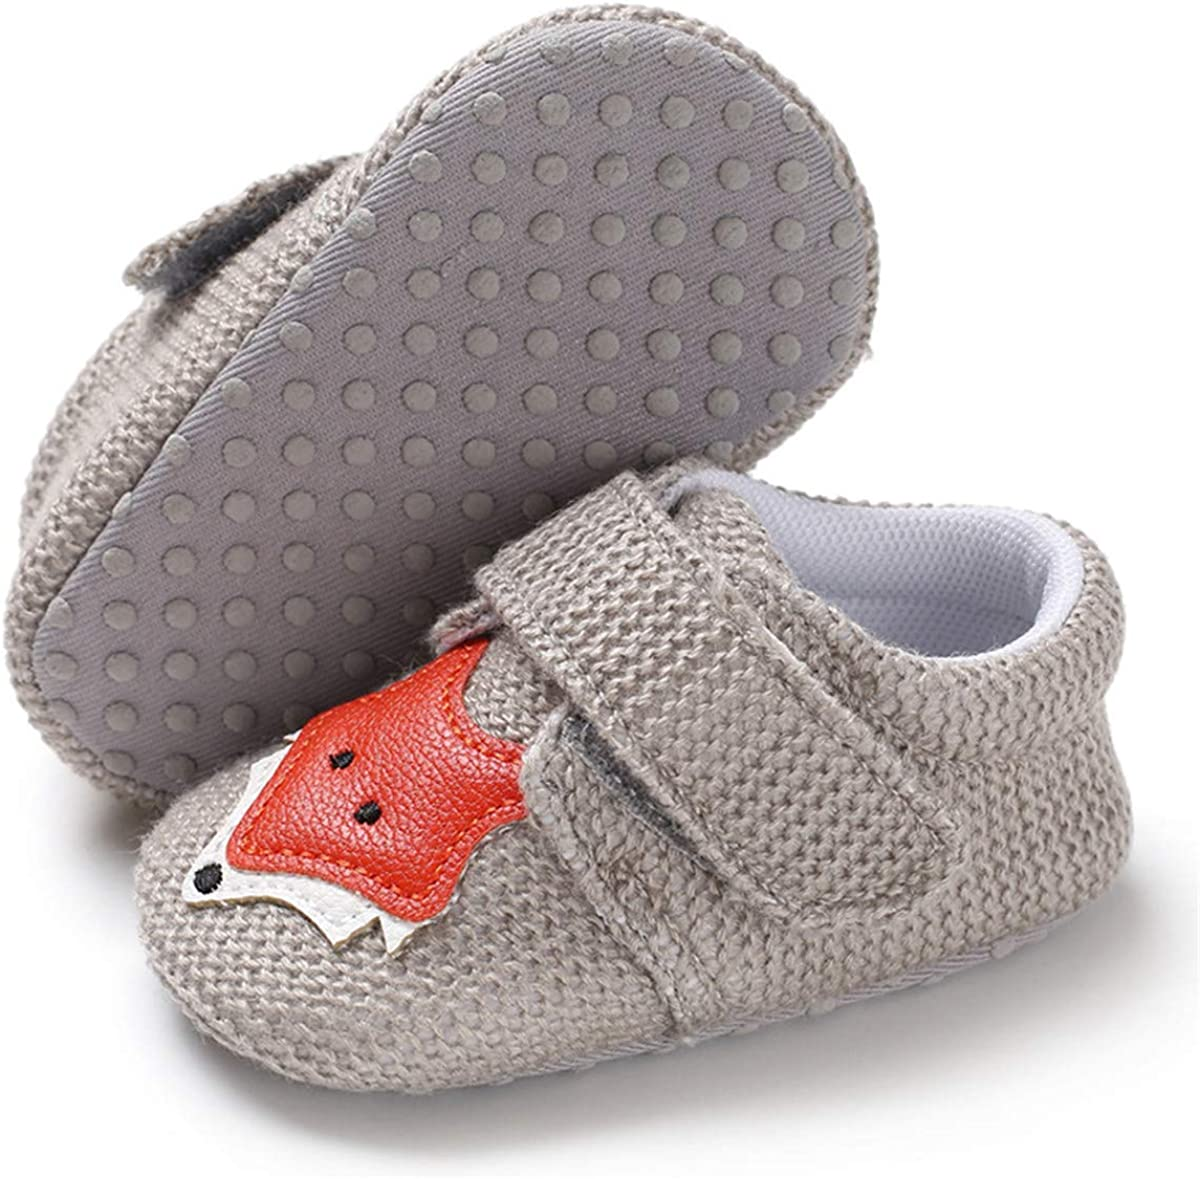 Baby Non-Slip Soft Soled Cotton Shoes Toddler Unisex First Walkers Socks Shoes